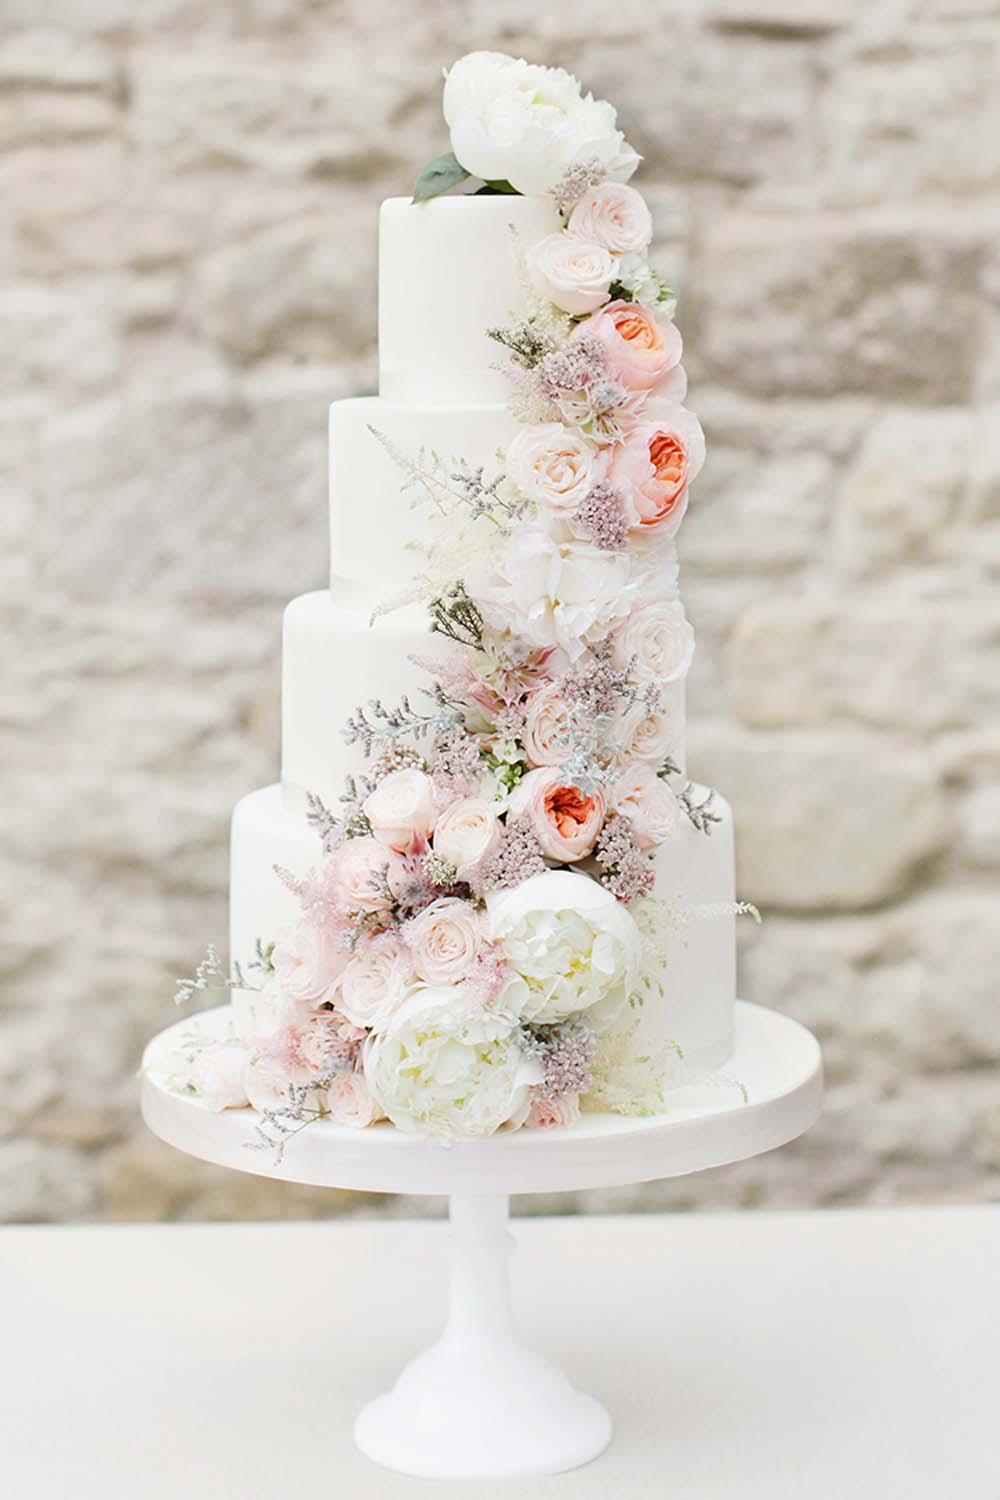 Fresh Flower Wedding Cakes That Could Rival Harry and Meghan\'s ...